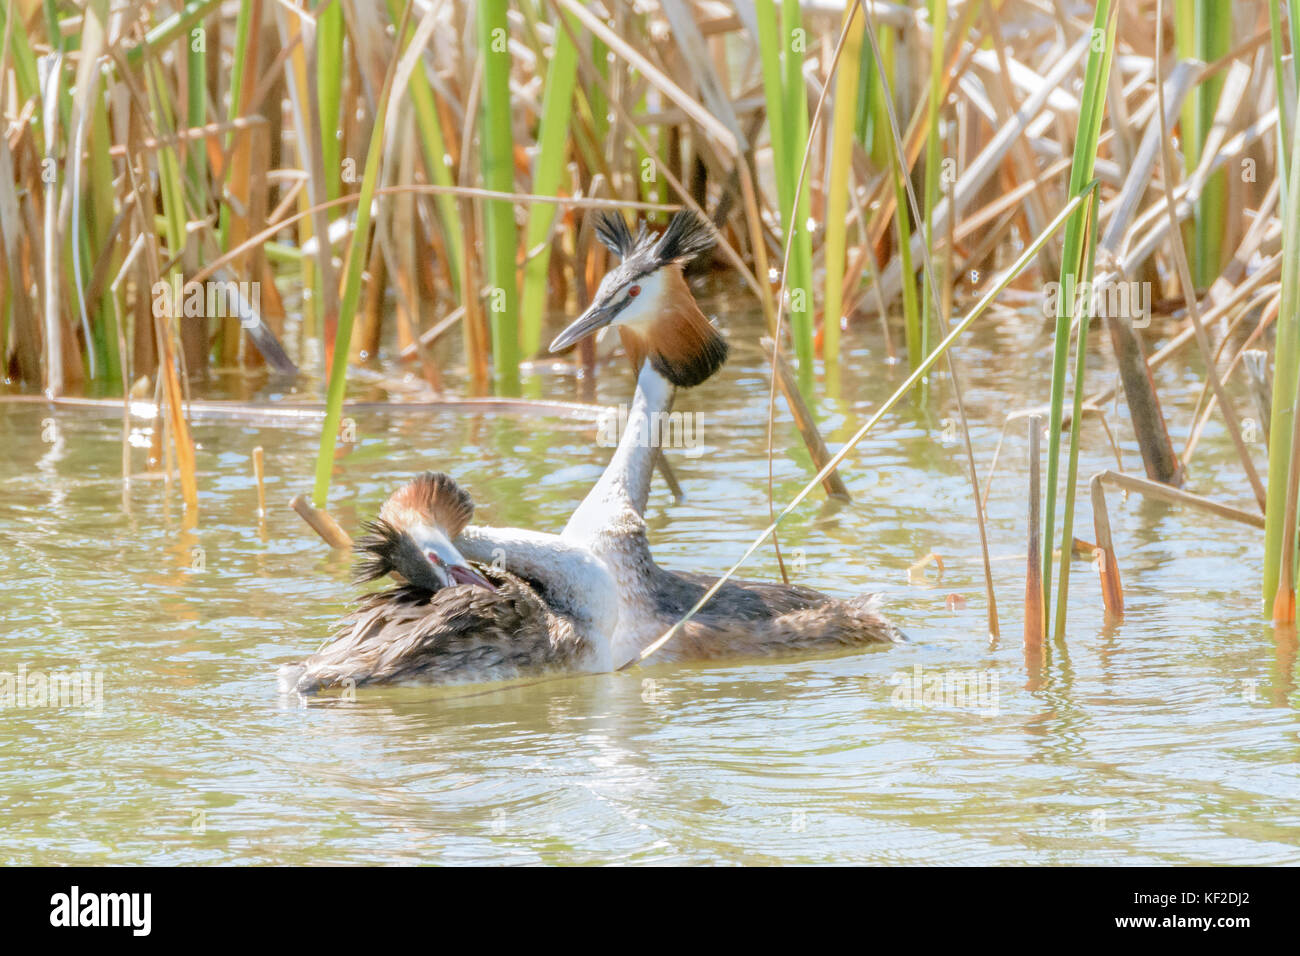 Two great crested grebes dancing during mating season in their winter plumage. - Stock Image